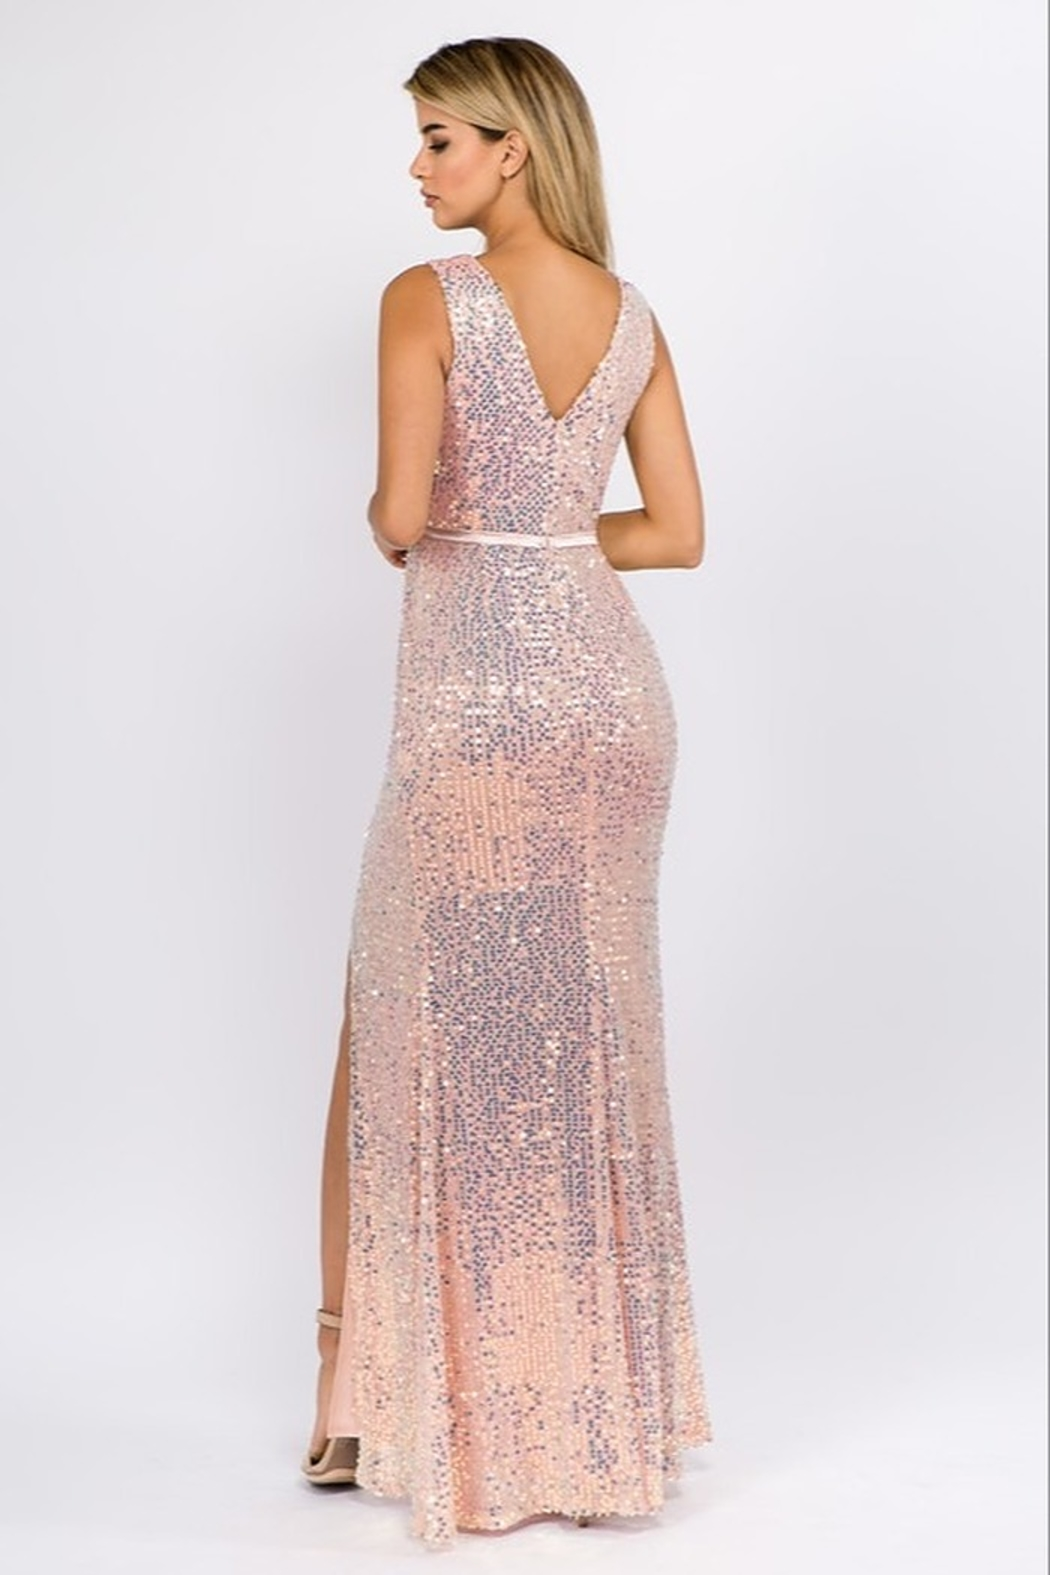 maniju Sequin Formal Gown - Side Cropped Image